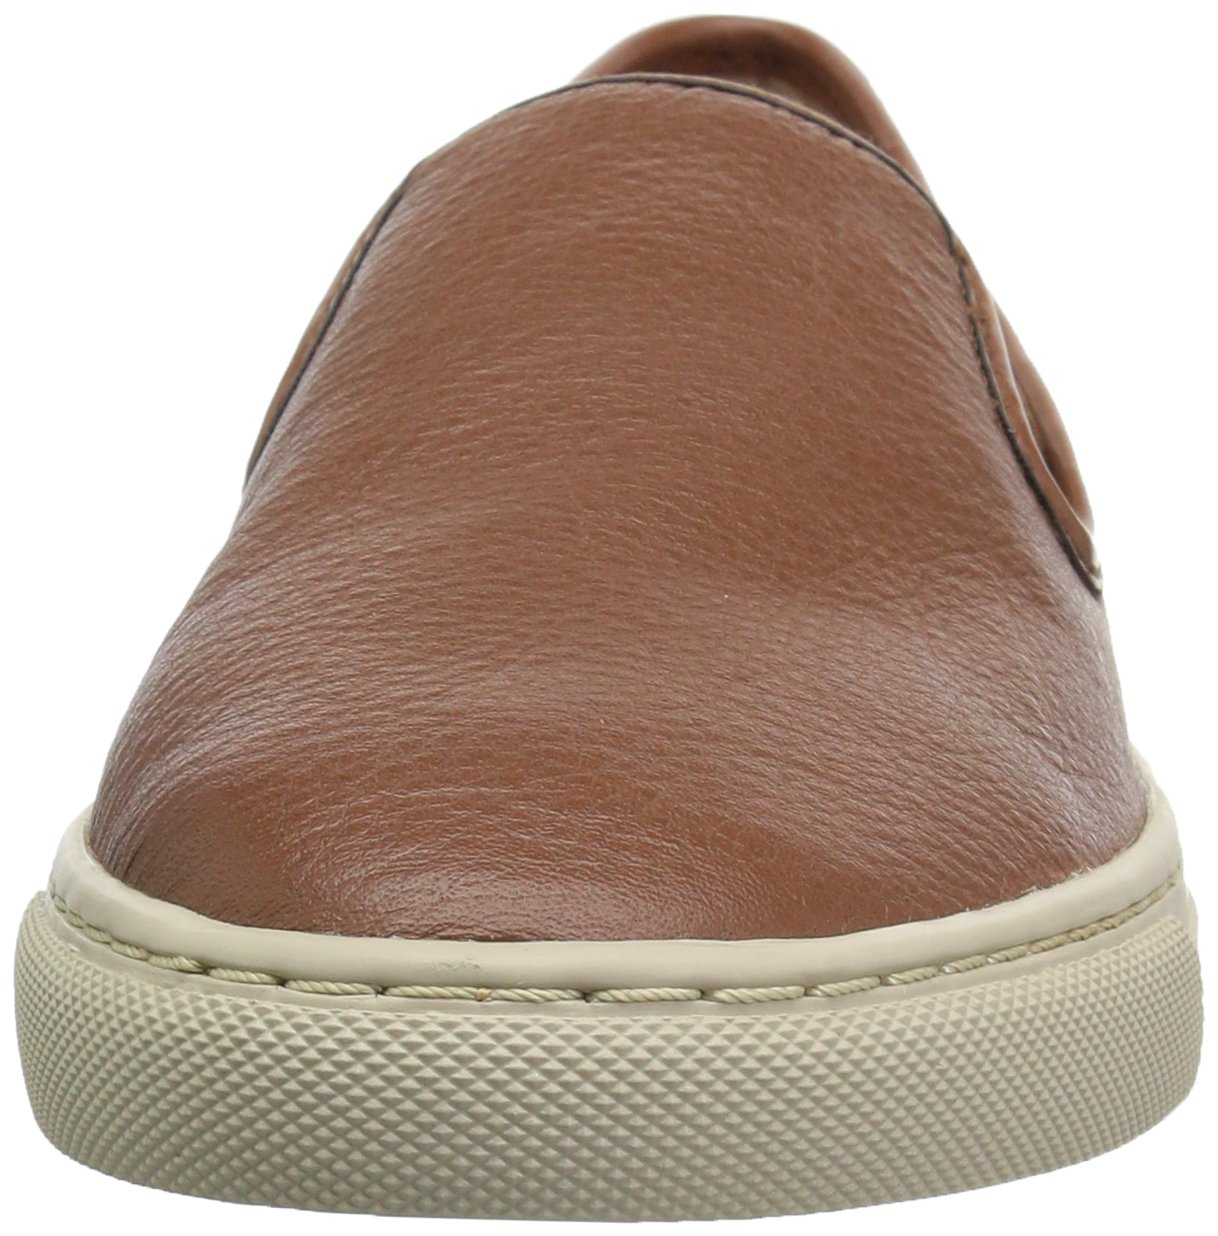 206 Collective Women's Cooper Perforated Slip-on Fashion Sneaker, Cognac Leather, 8.5 B US by 206 Collective (Image #4)